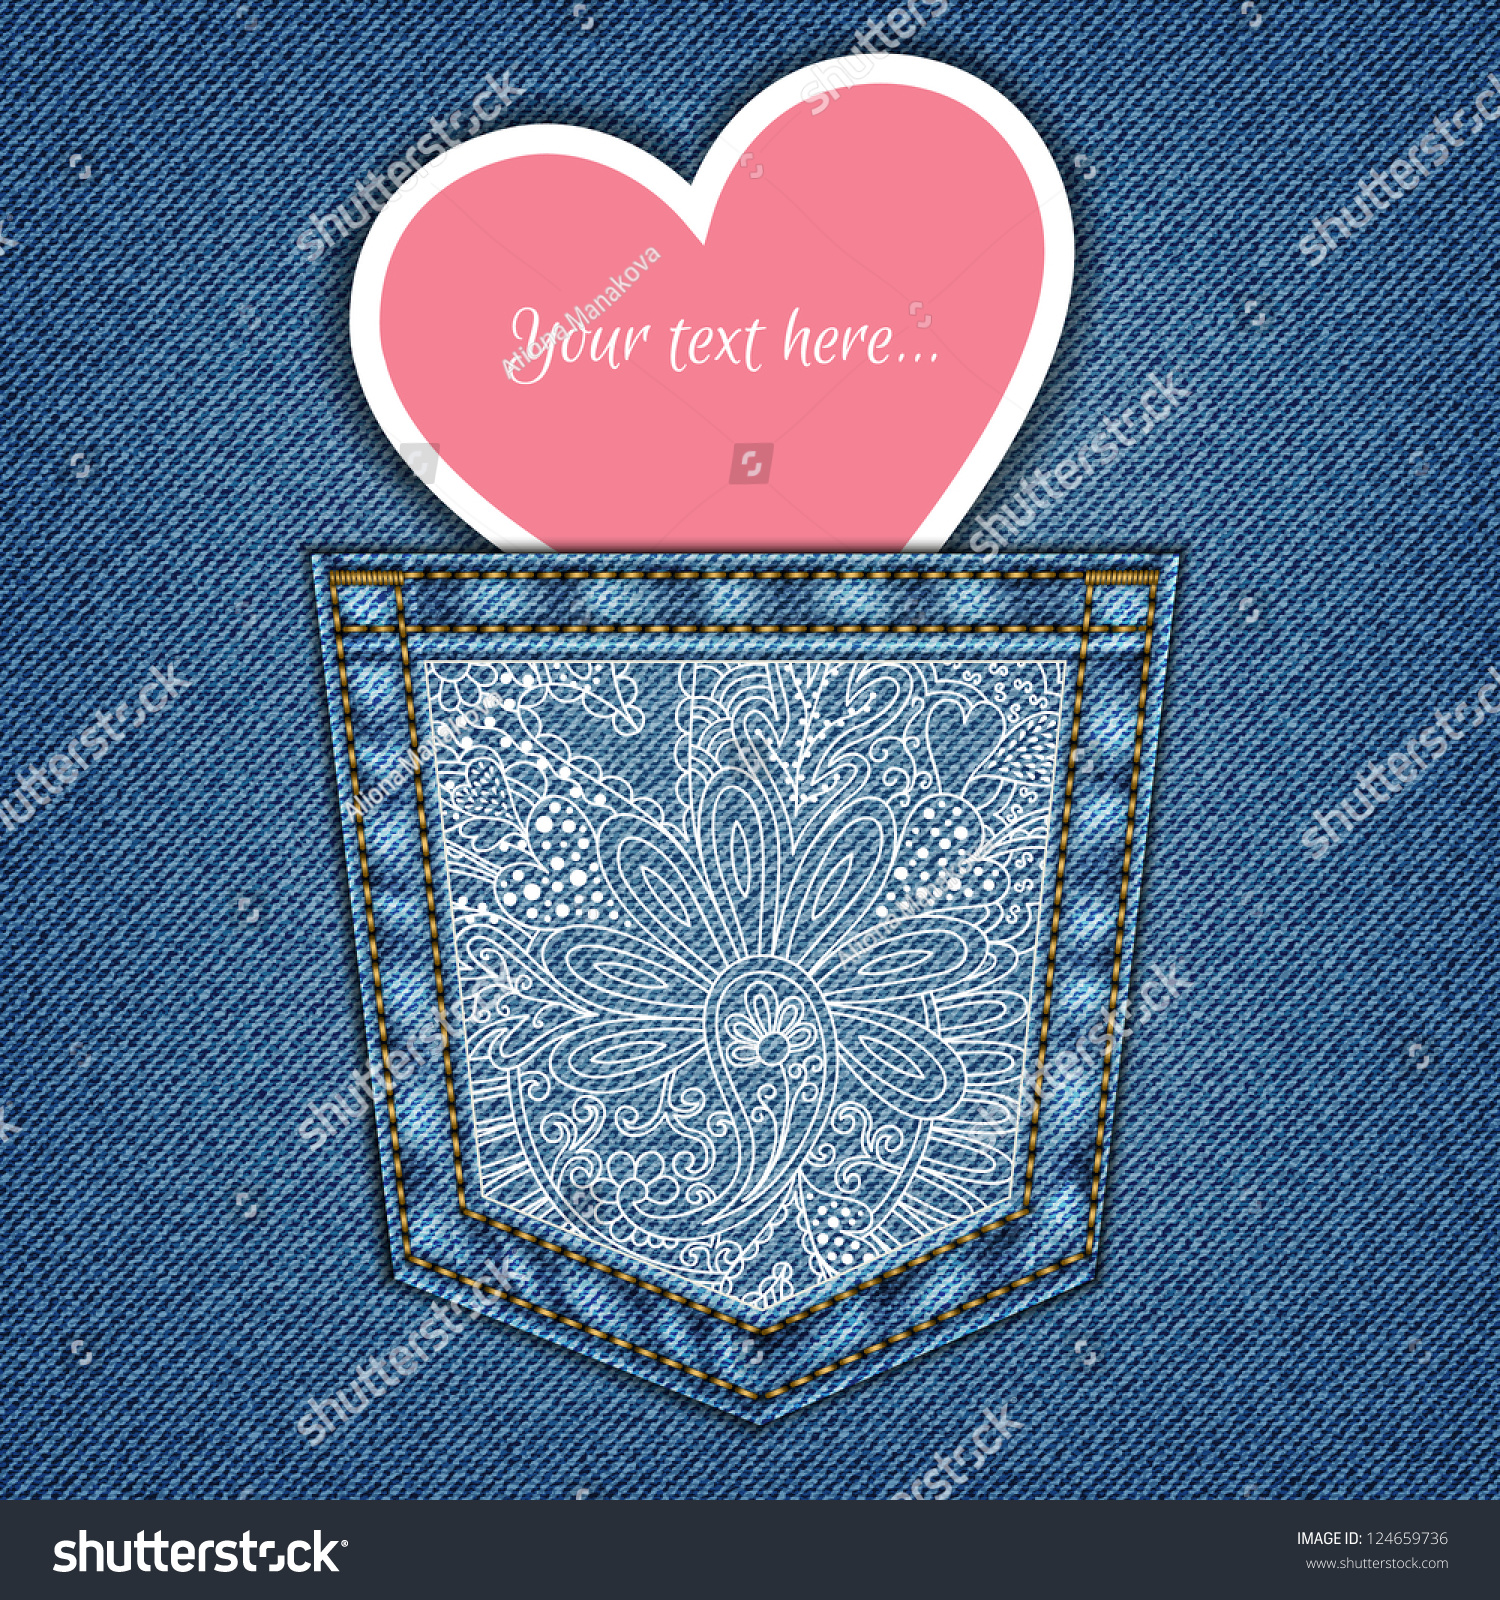 Invitation card on denim background jeans stock vector hd royalty invitation card on denim background with jeans pocket and heart in vector eps 10 stopboris Gallery